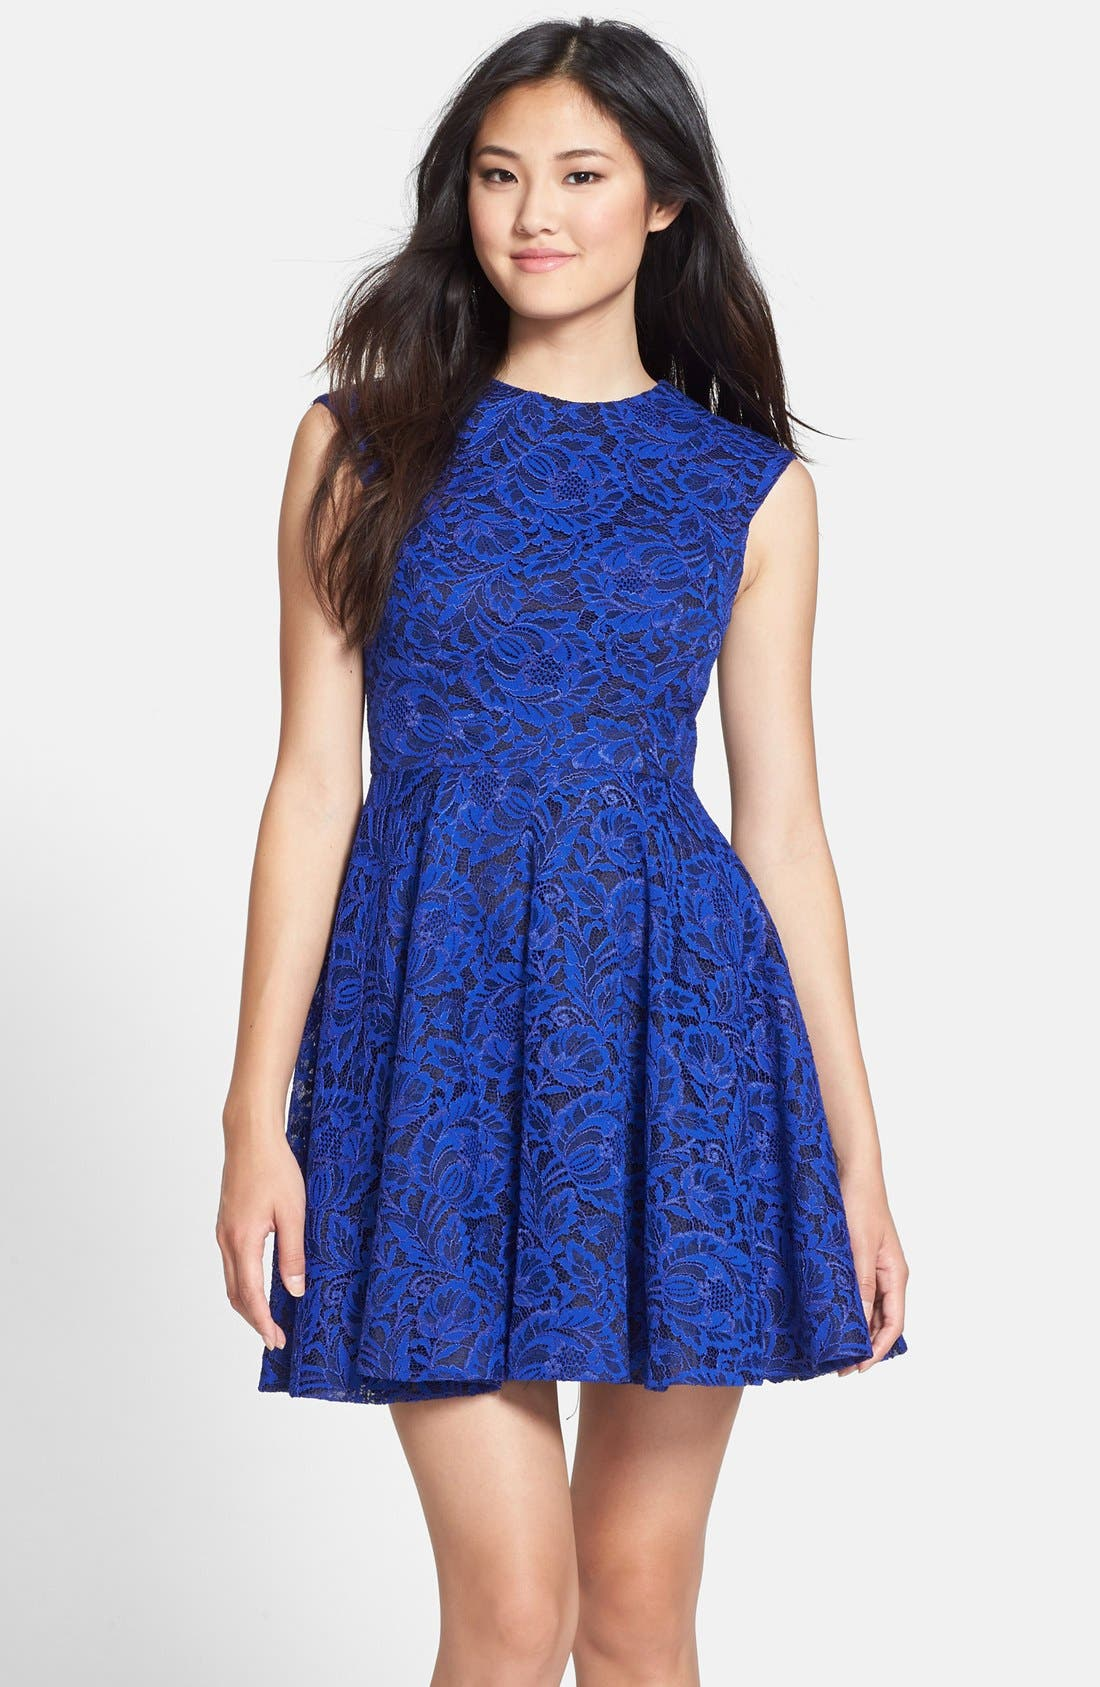 Main Image - Cynthia Rowley Lace Fit & Flare Dress